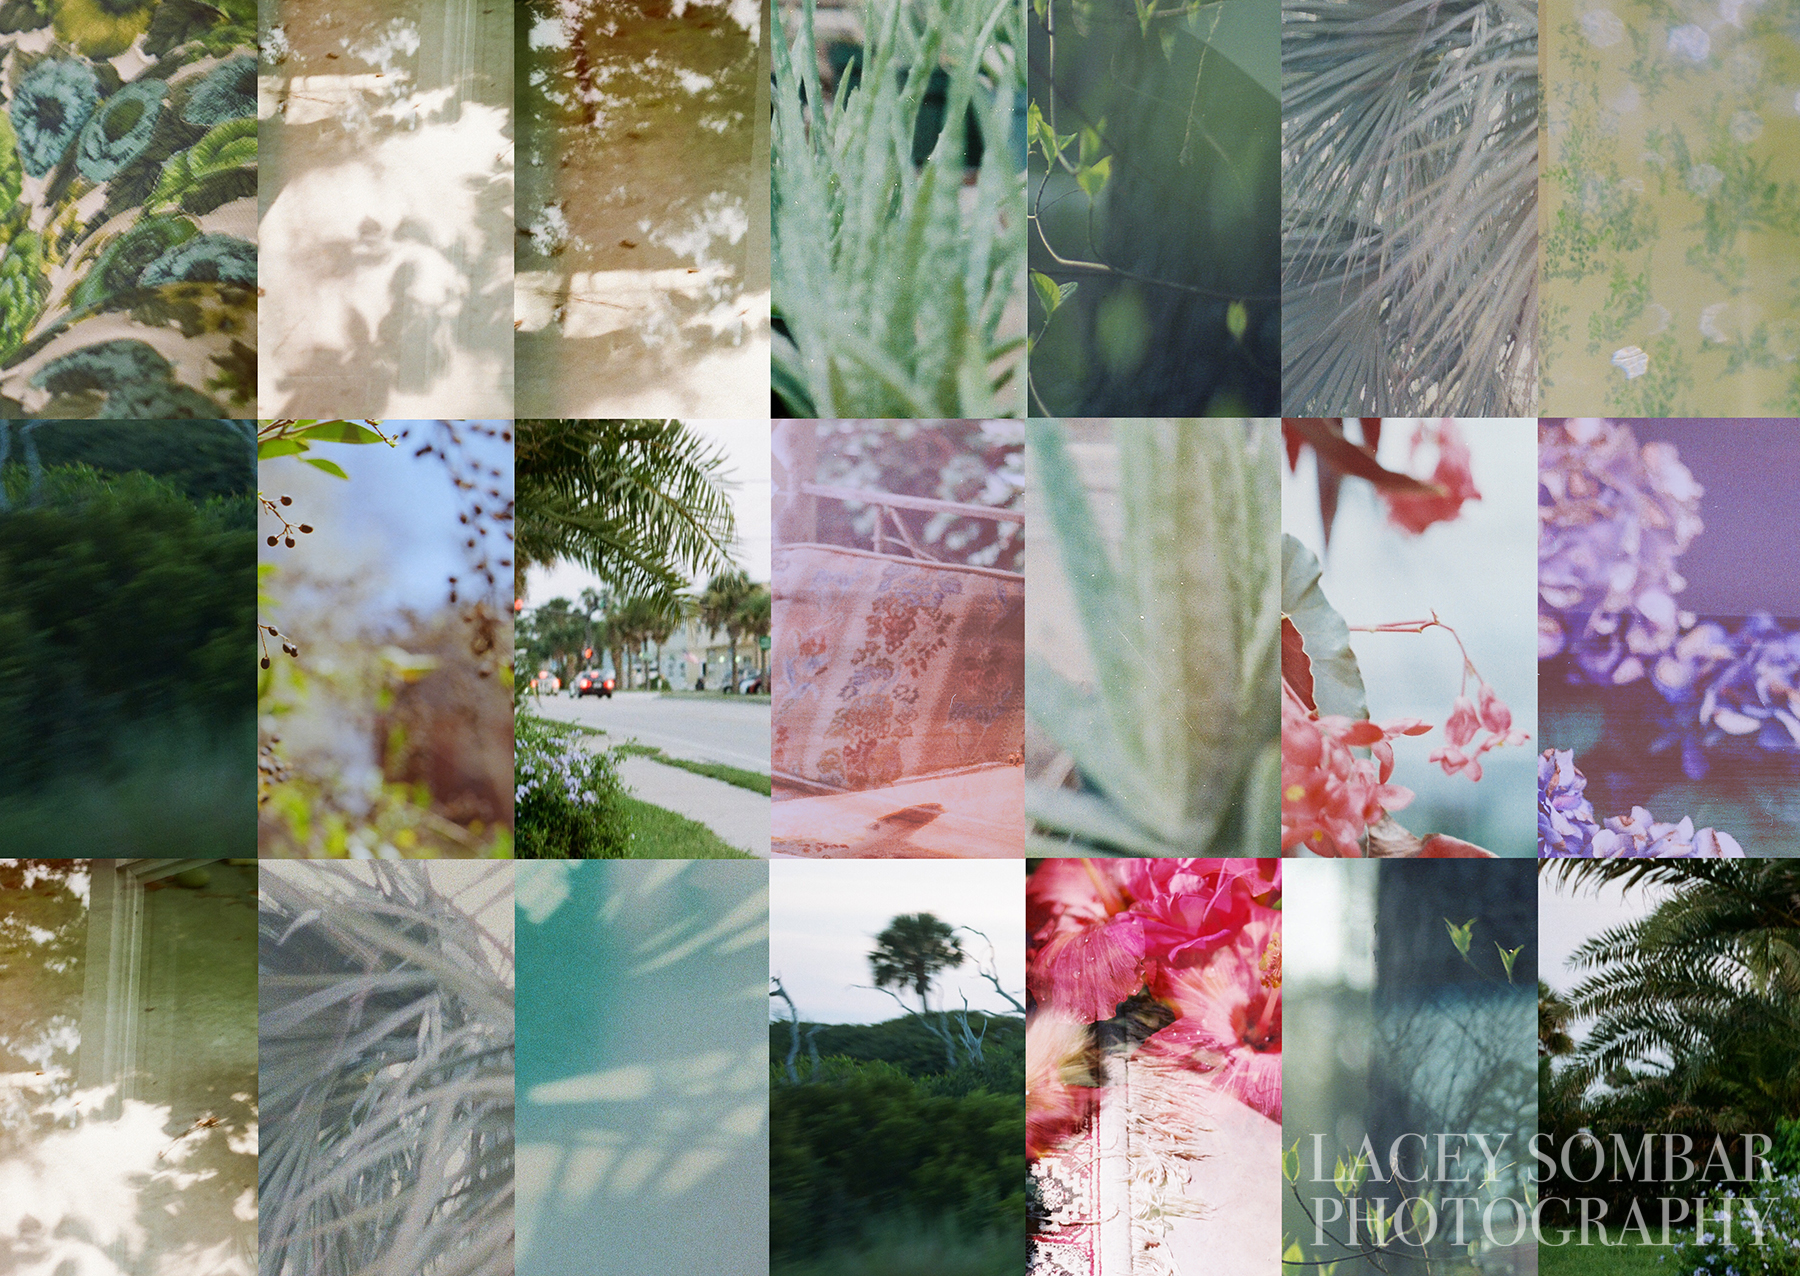 Lacey Sombar Photo Quilt 2